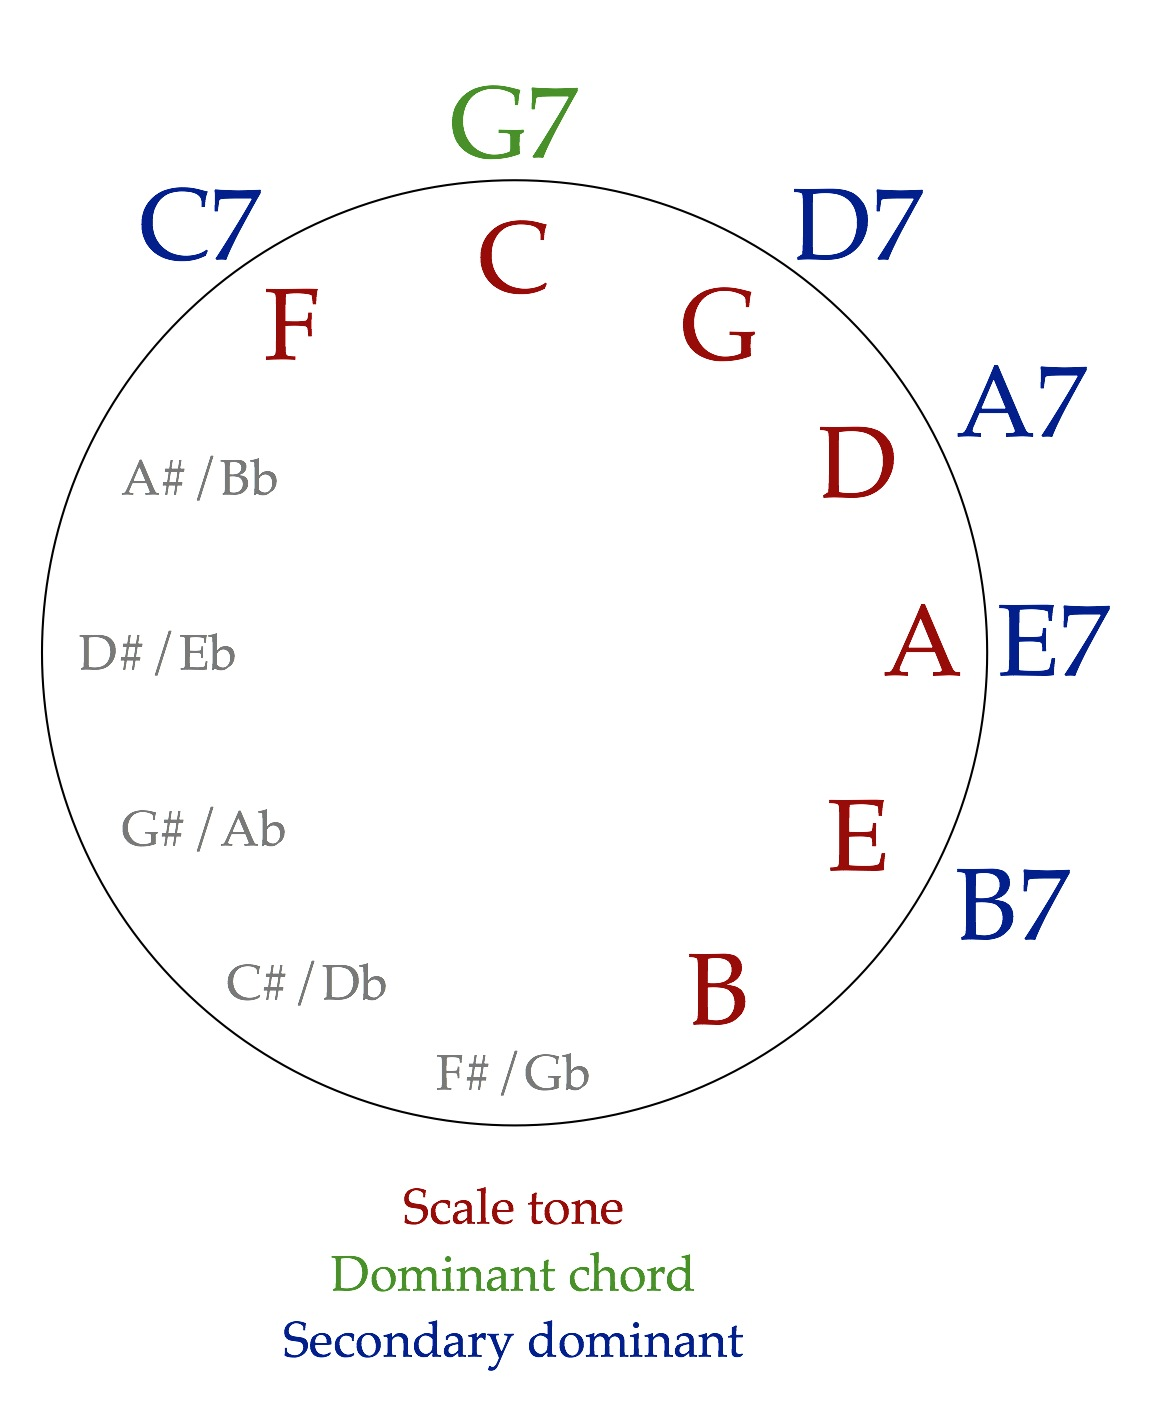 Secondary dominants the ethan hein blog going around the circle of fifths using dominant chords is a time honored songwriting technique and a sound youll instantly recognize from jazz hexwebz Choice Image